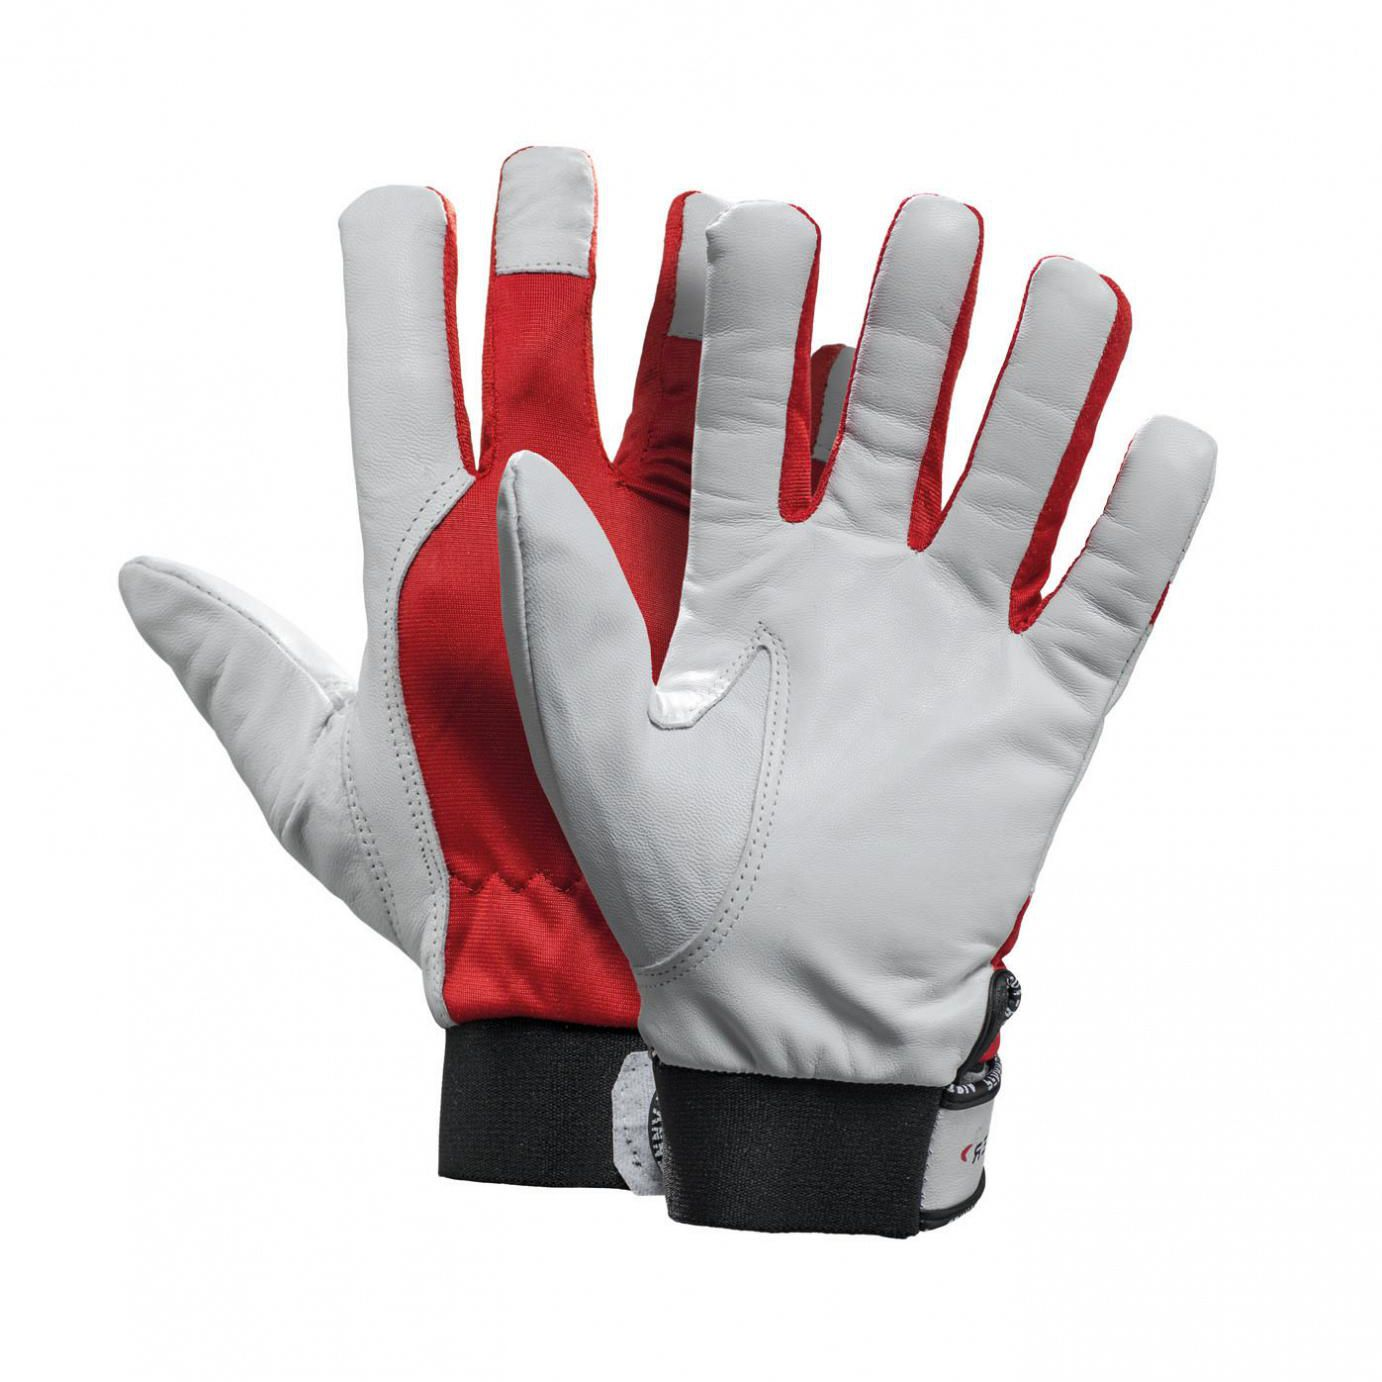 Thermal leather work gloves - Work Gloves Thermal Protection Leather For The Metallurgical Industry Stretchflex 100003